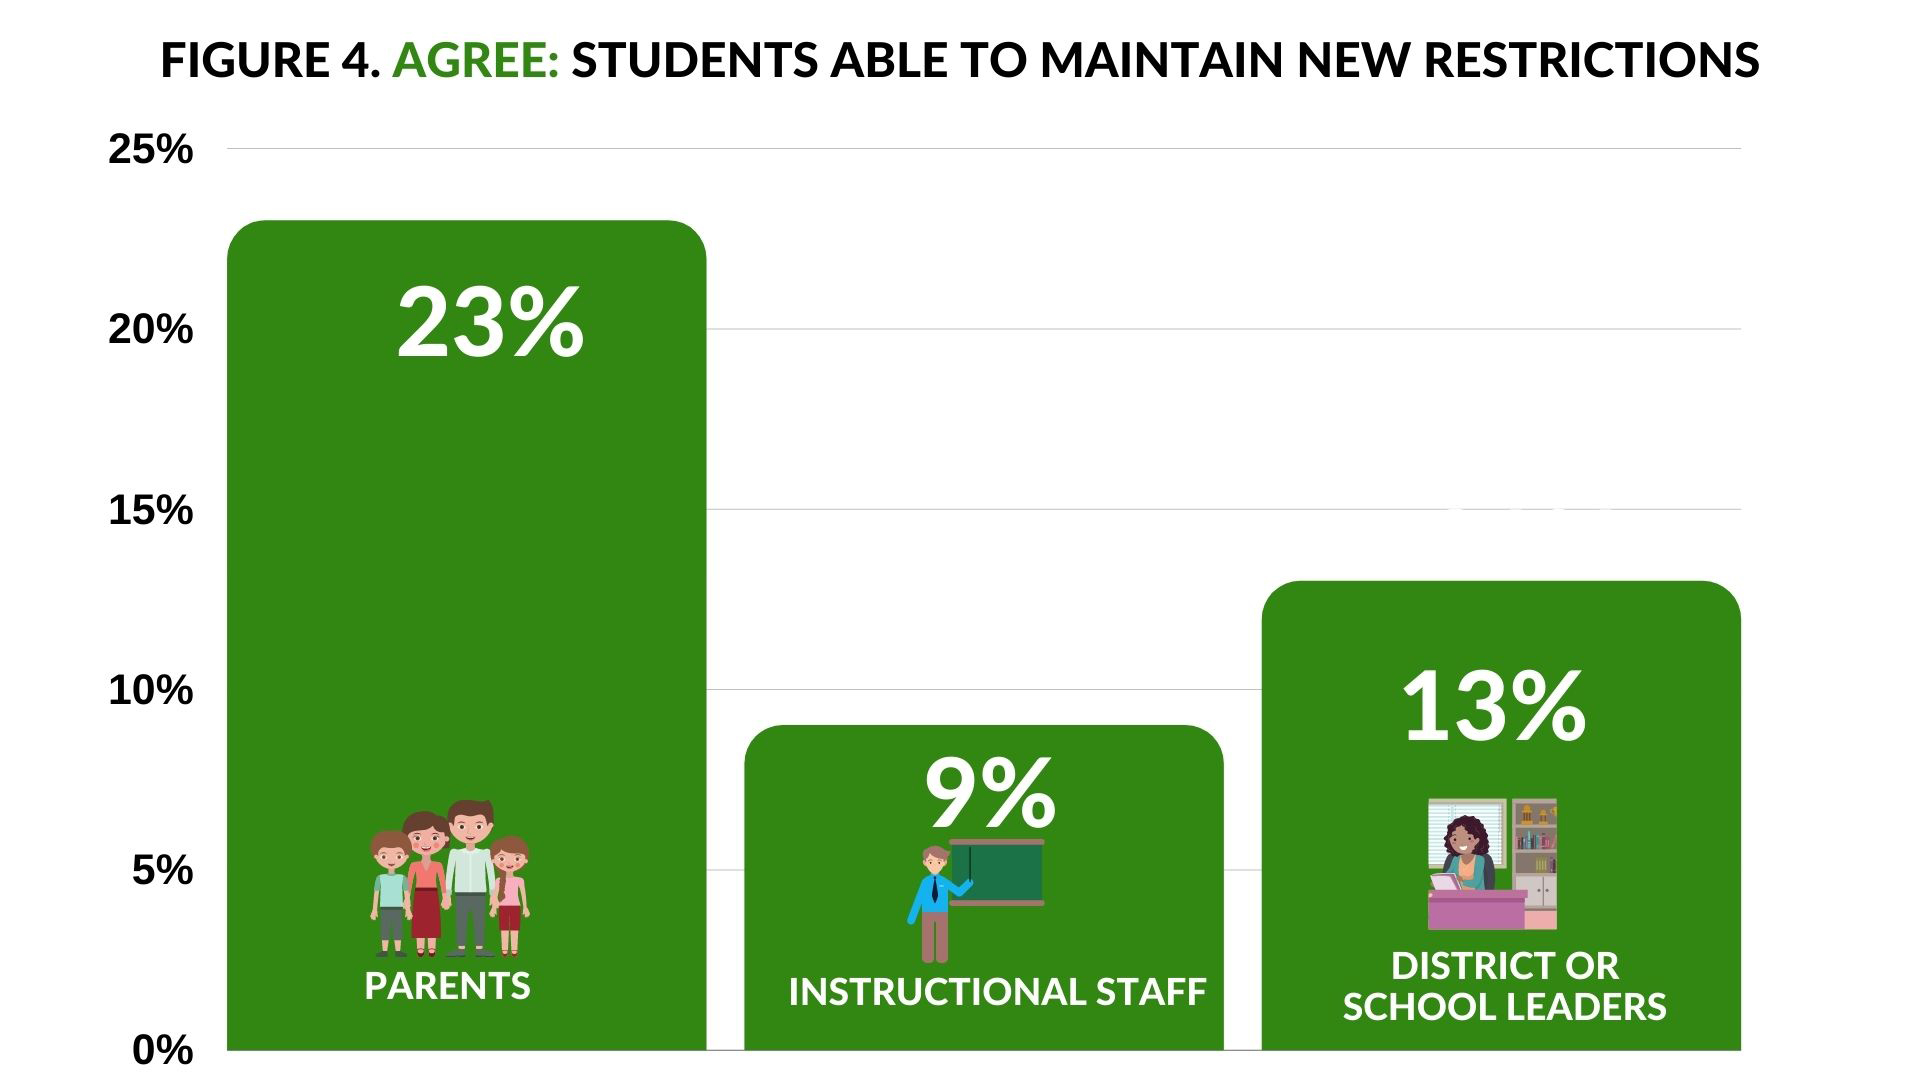 Agree students able to maintain new restrictions - 23% parents; 9% Instructional Staff; 13% District of School Leaders